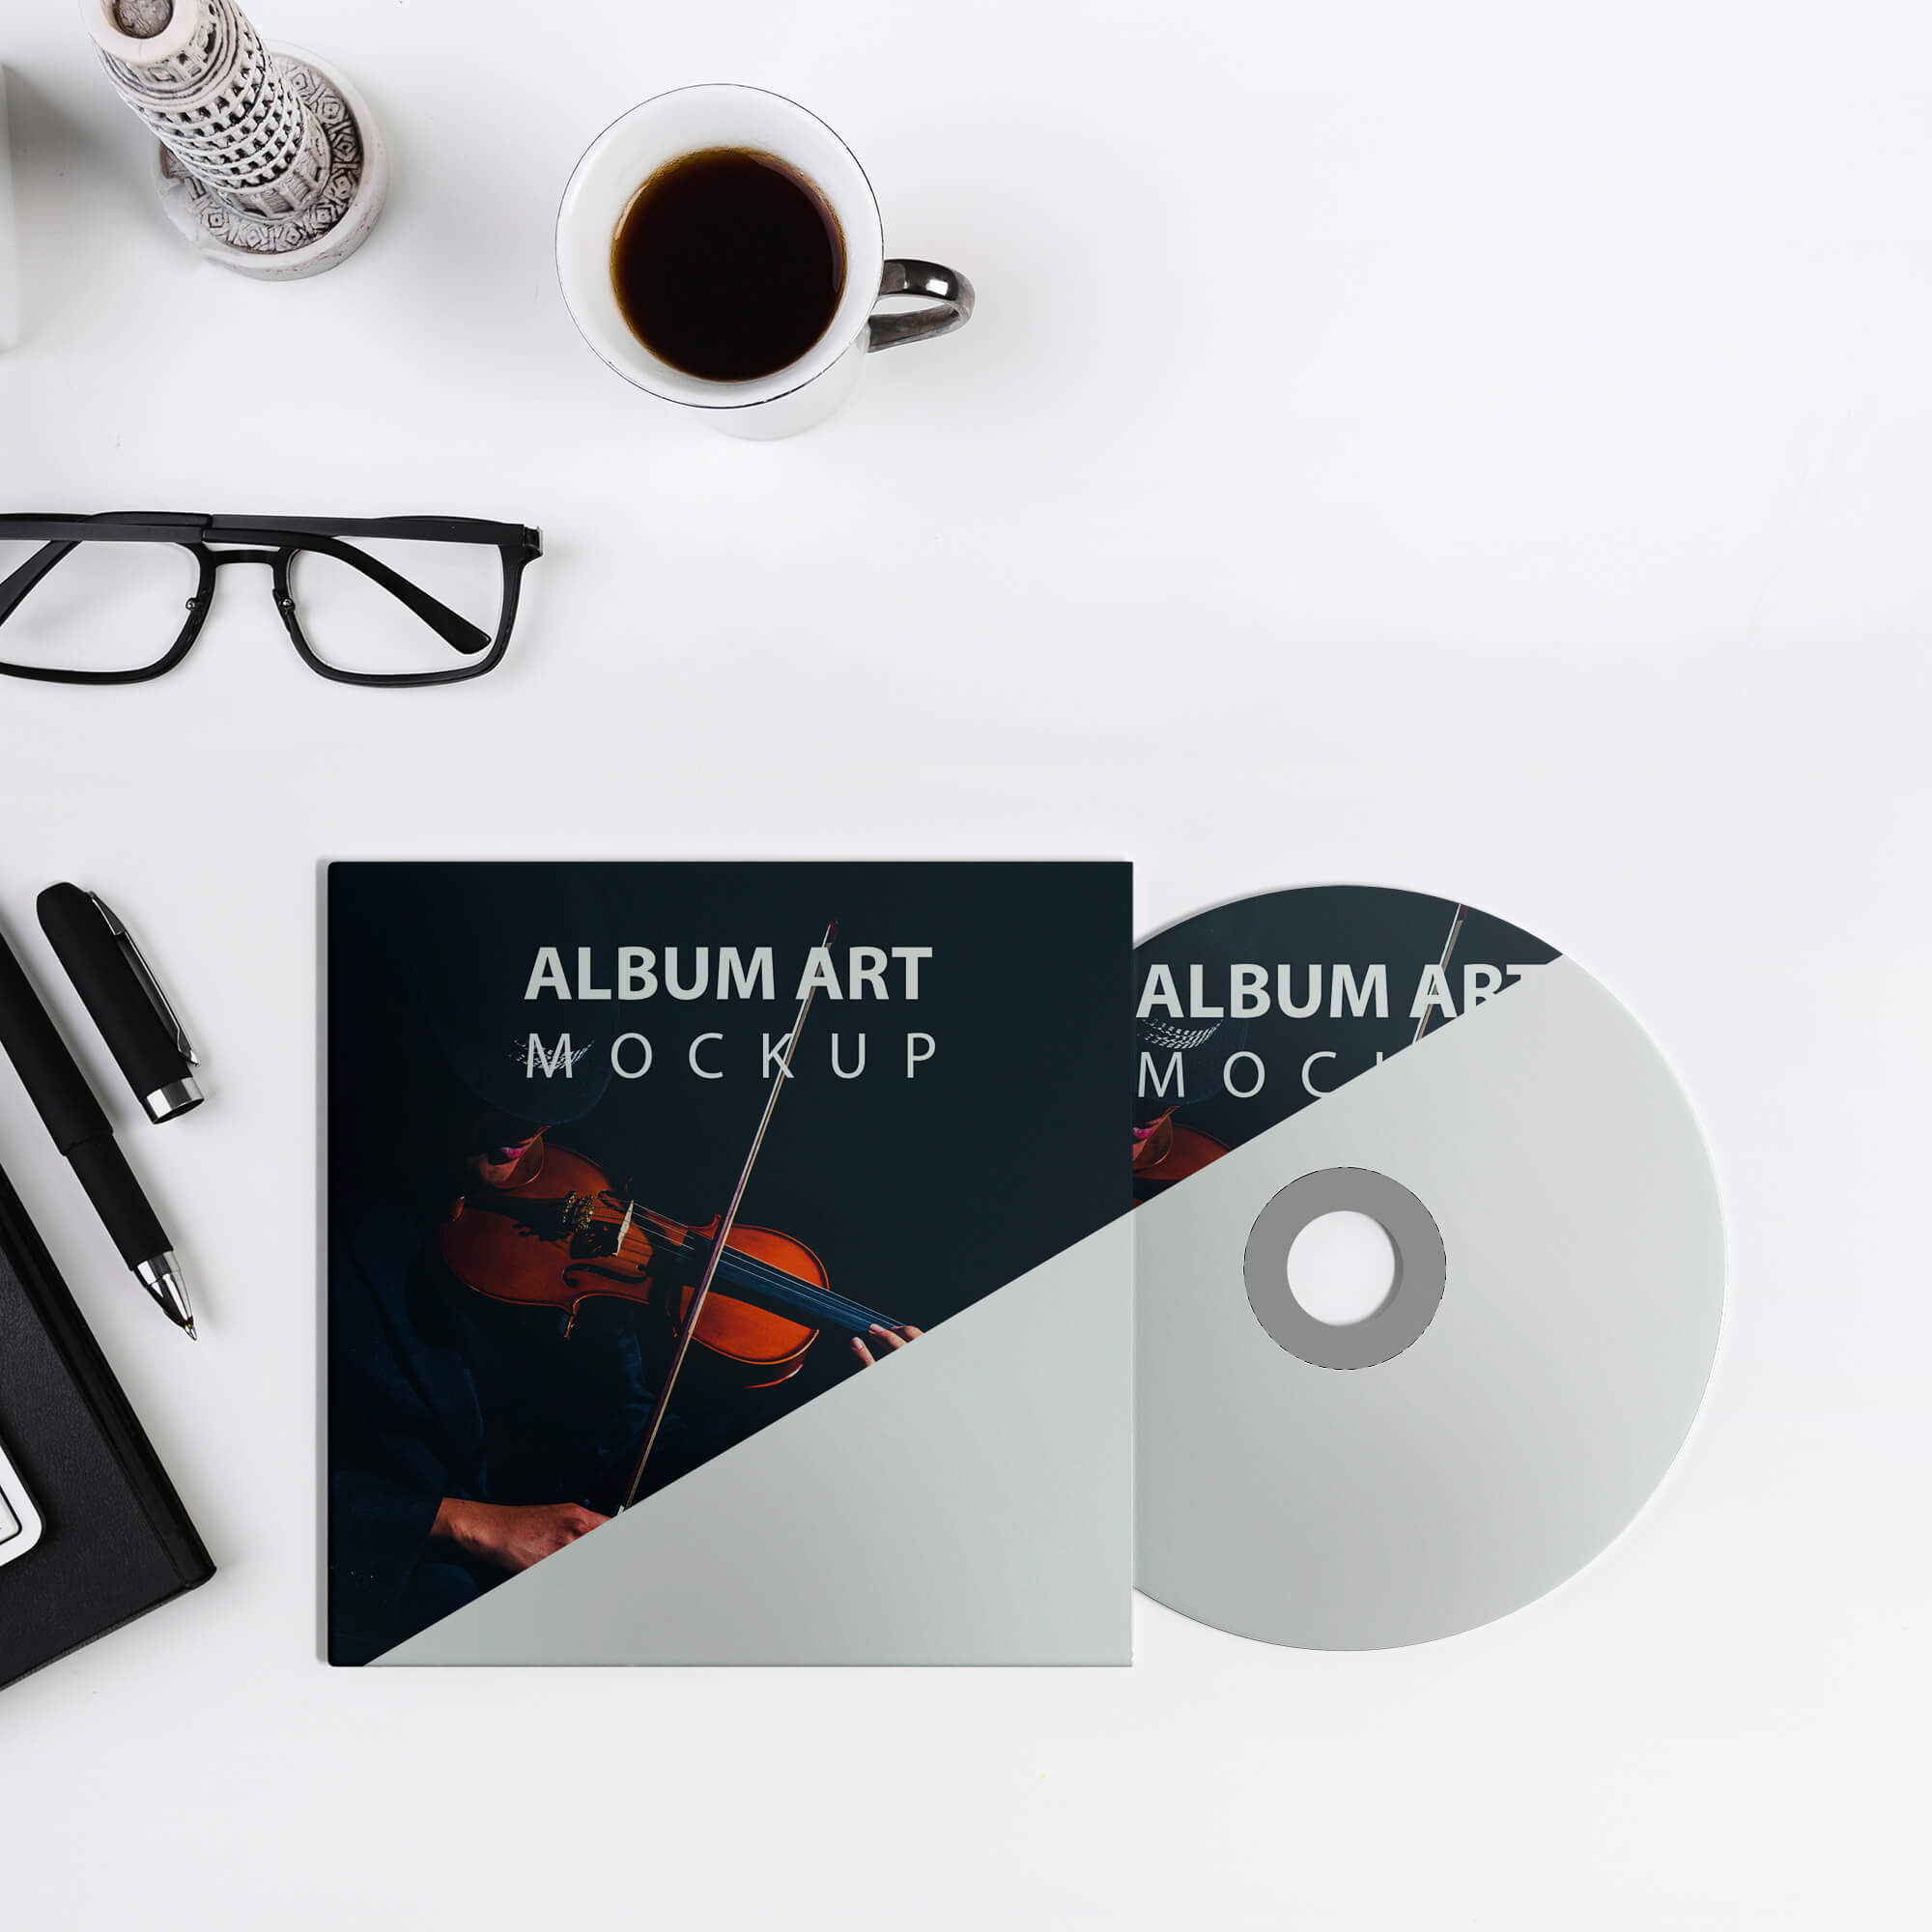 Editable Free Album Art Mockup PSD Template